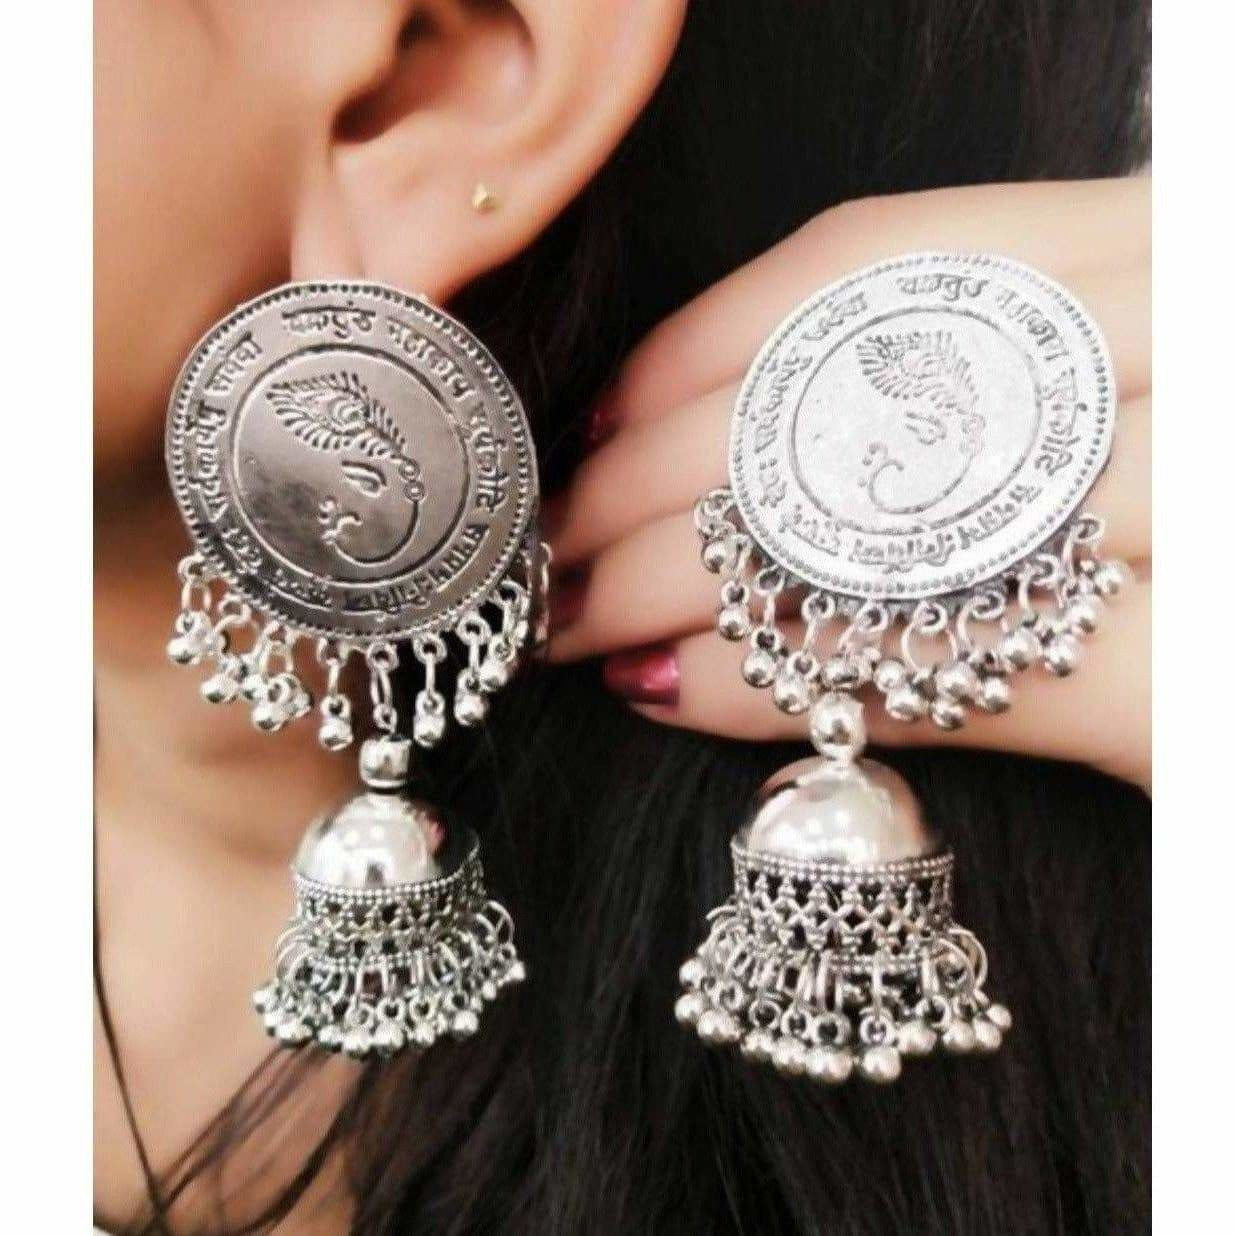 Lord Ganesh Symbol Silver Color Jhumka Earrings